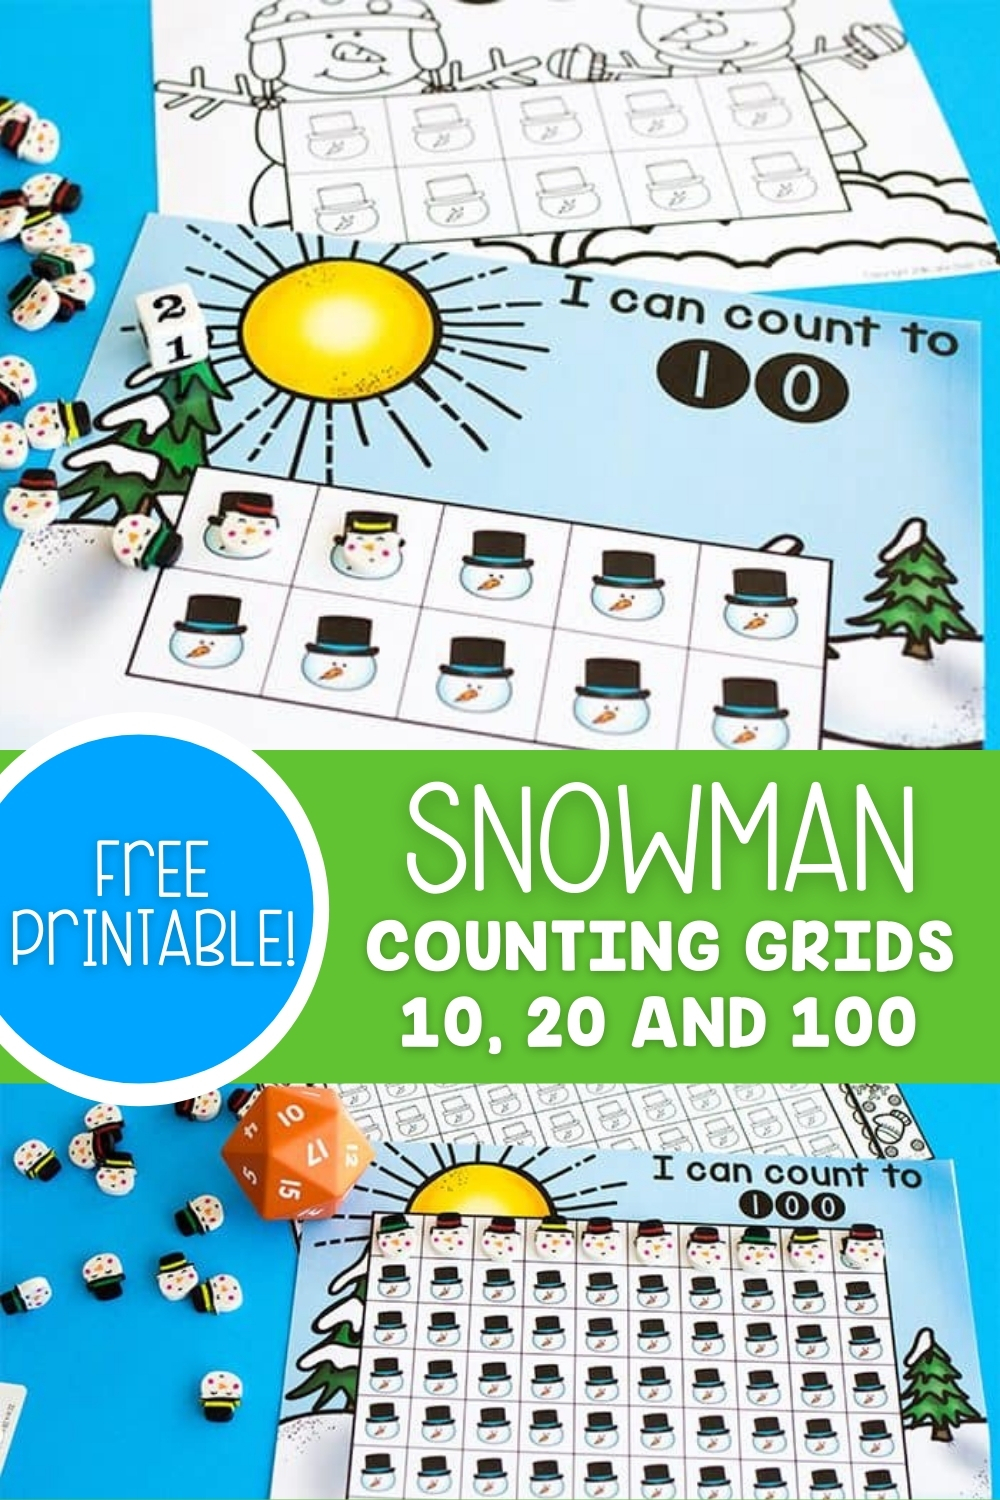 Free Printable Snowman Counting Grids